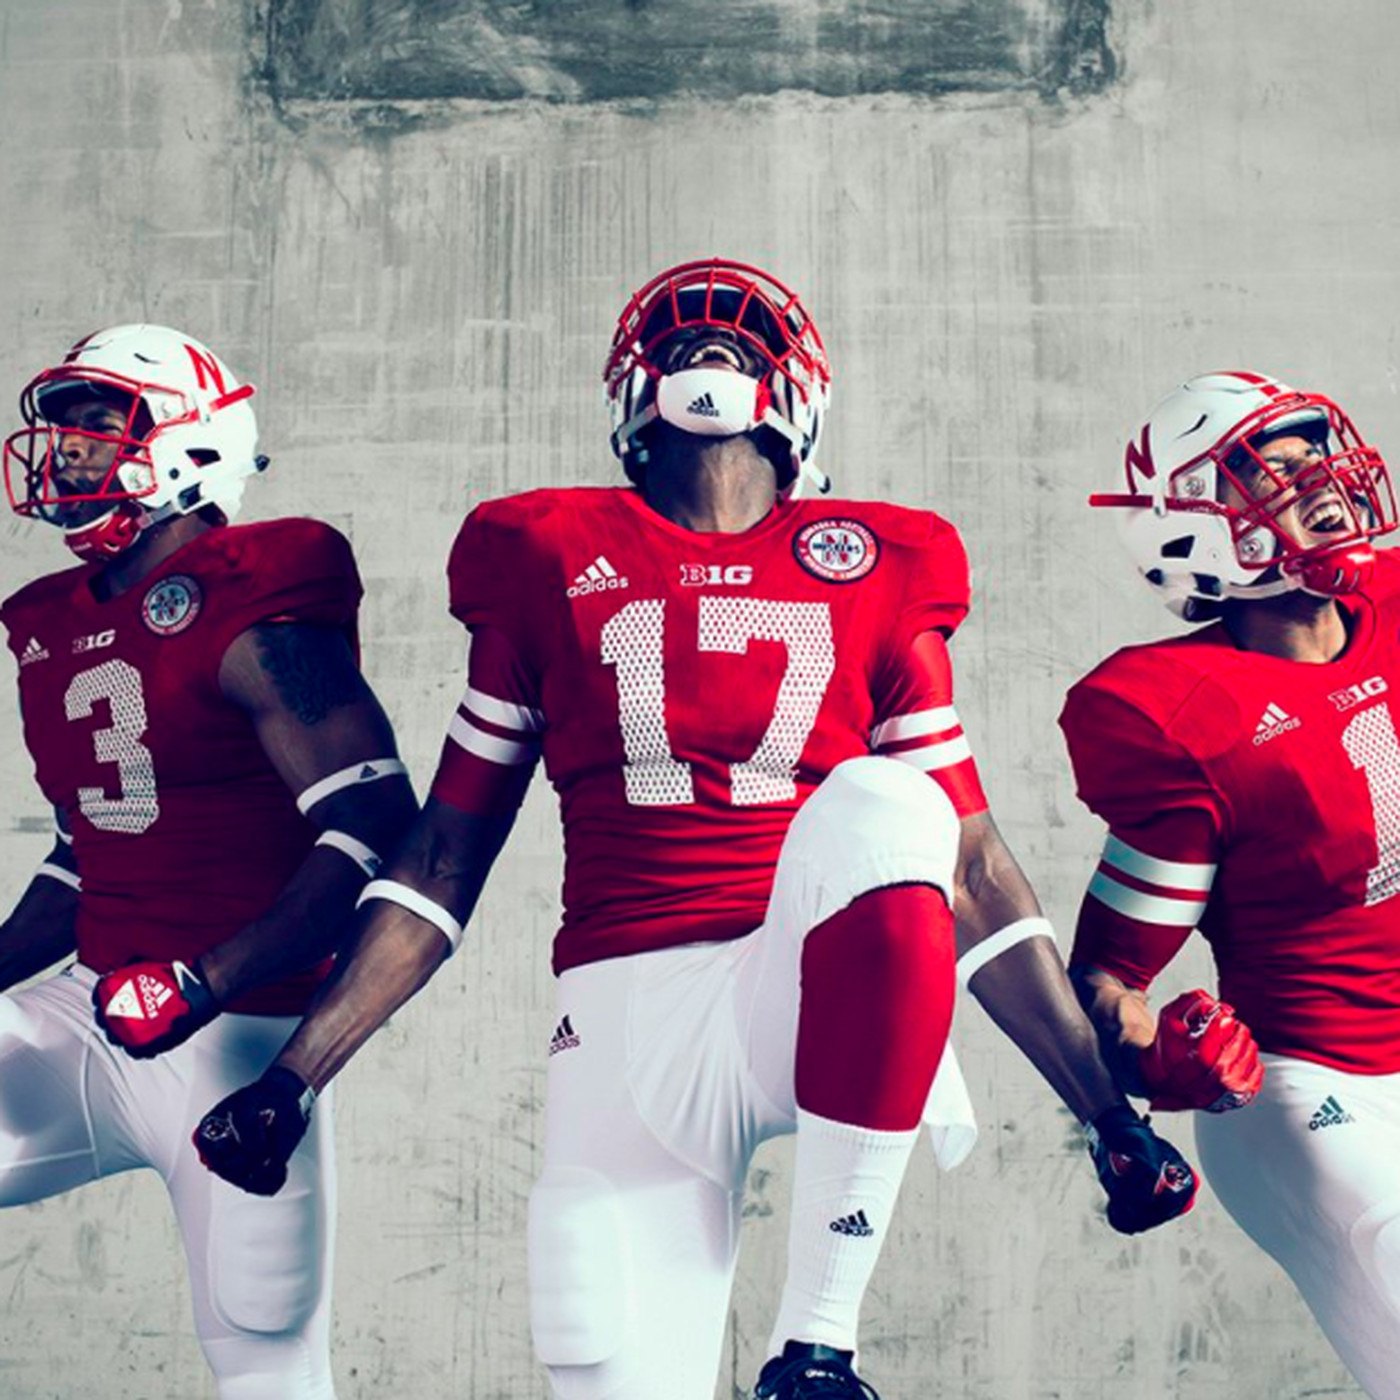 d61864a53 Adidas' college football uniforms are no longer universally terrible -  SBNation.com